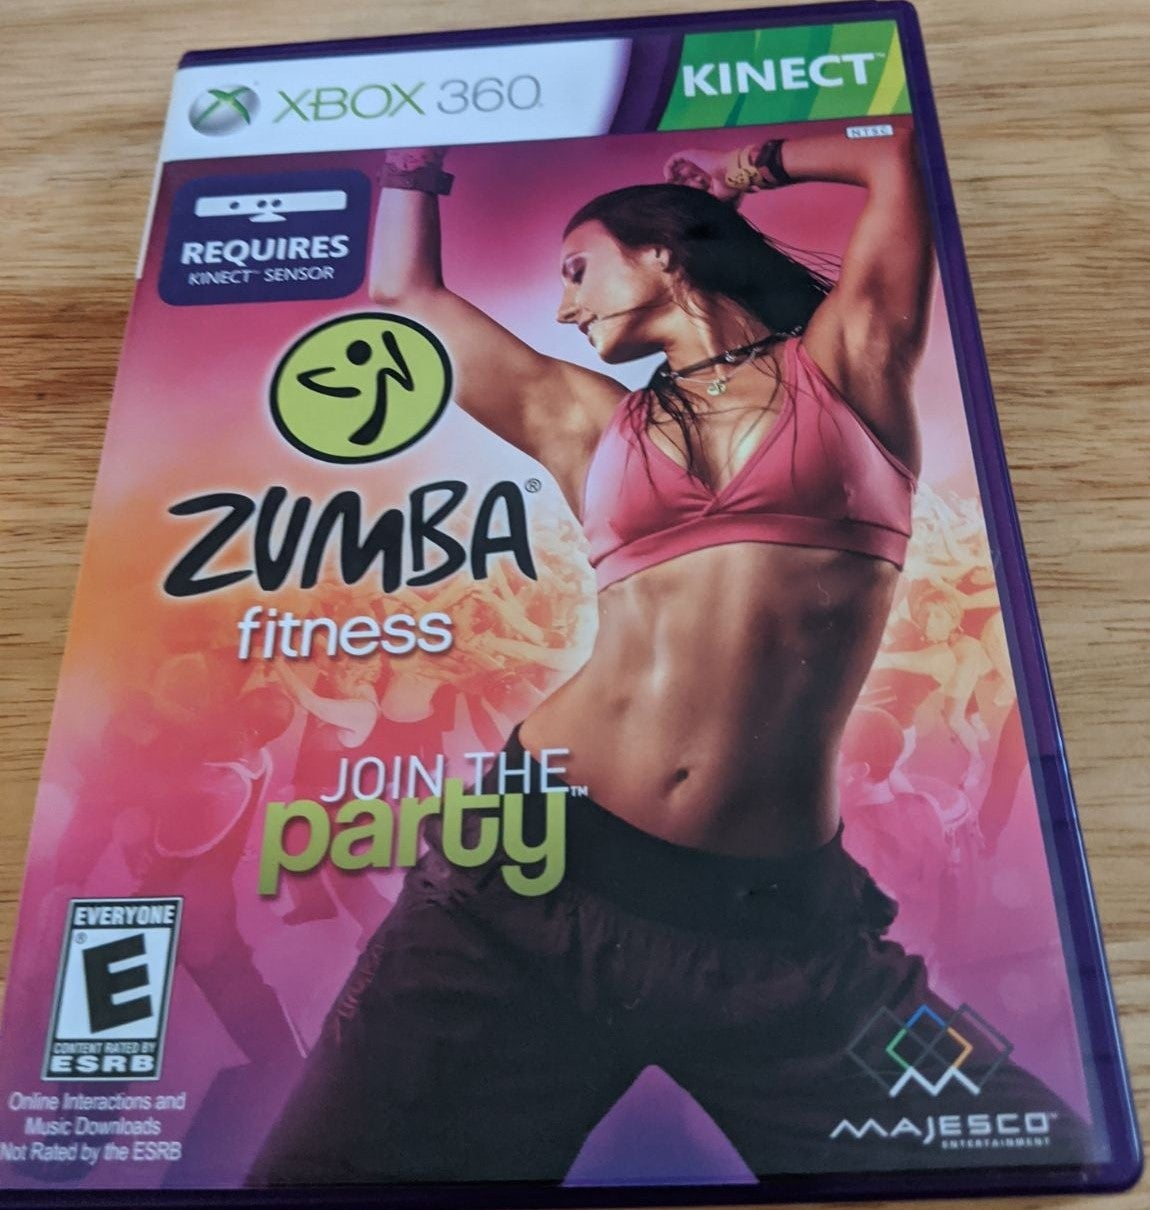 Xbox 360 Kinect Zumba Fitness Party Game